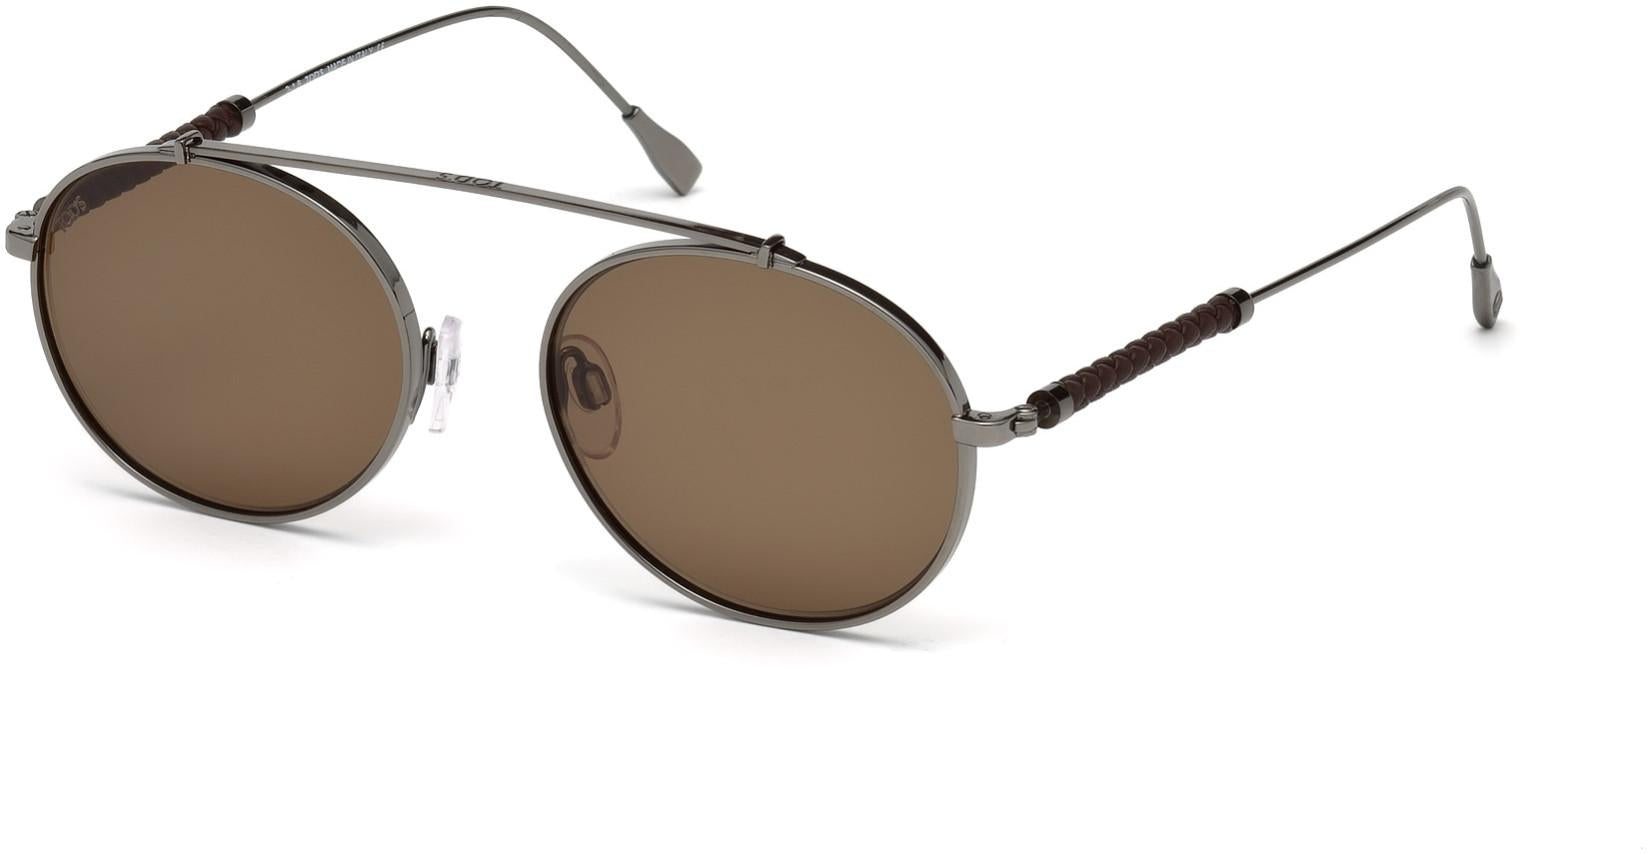 TOD'S 0198 Sunglasses